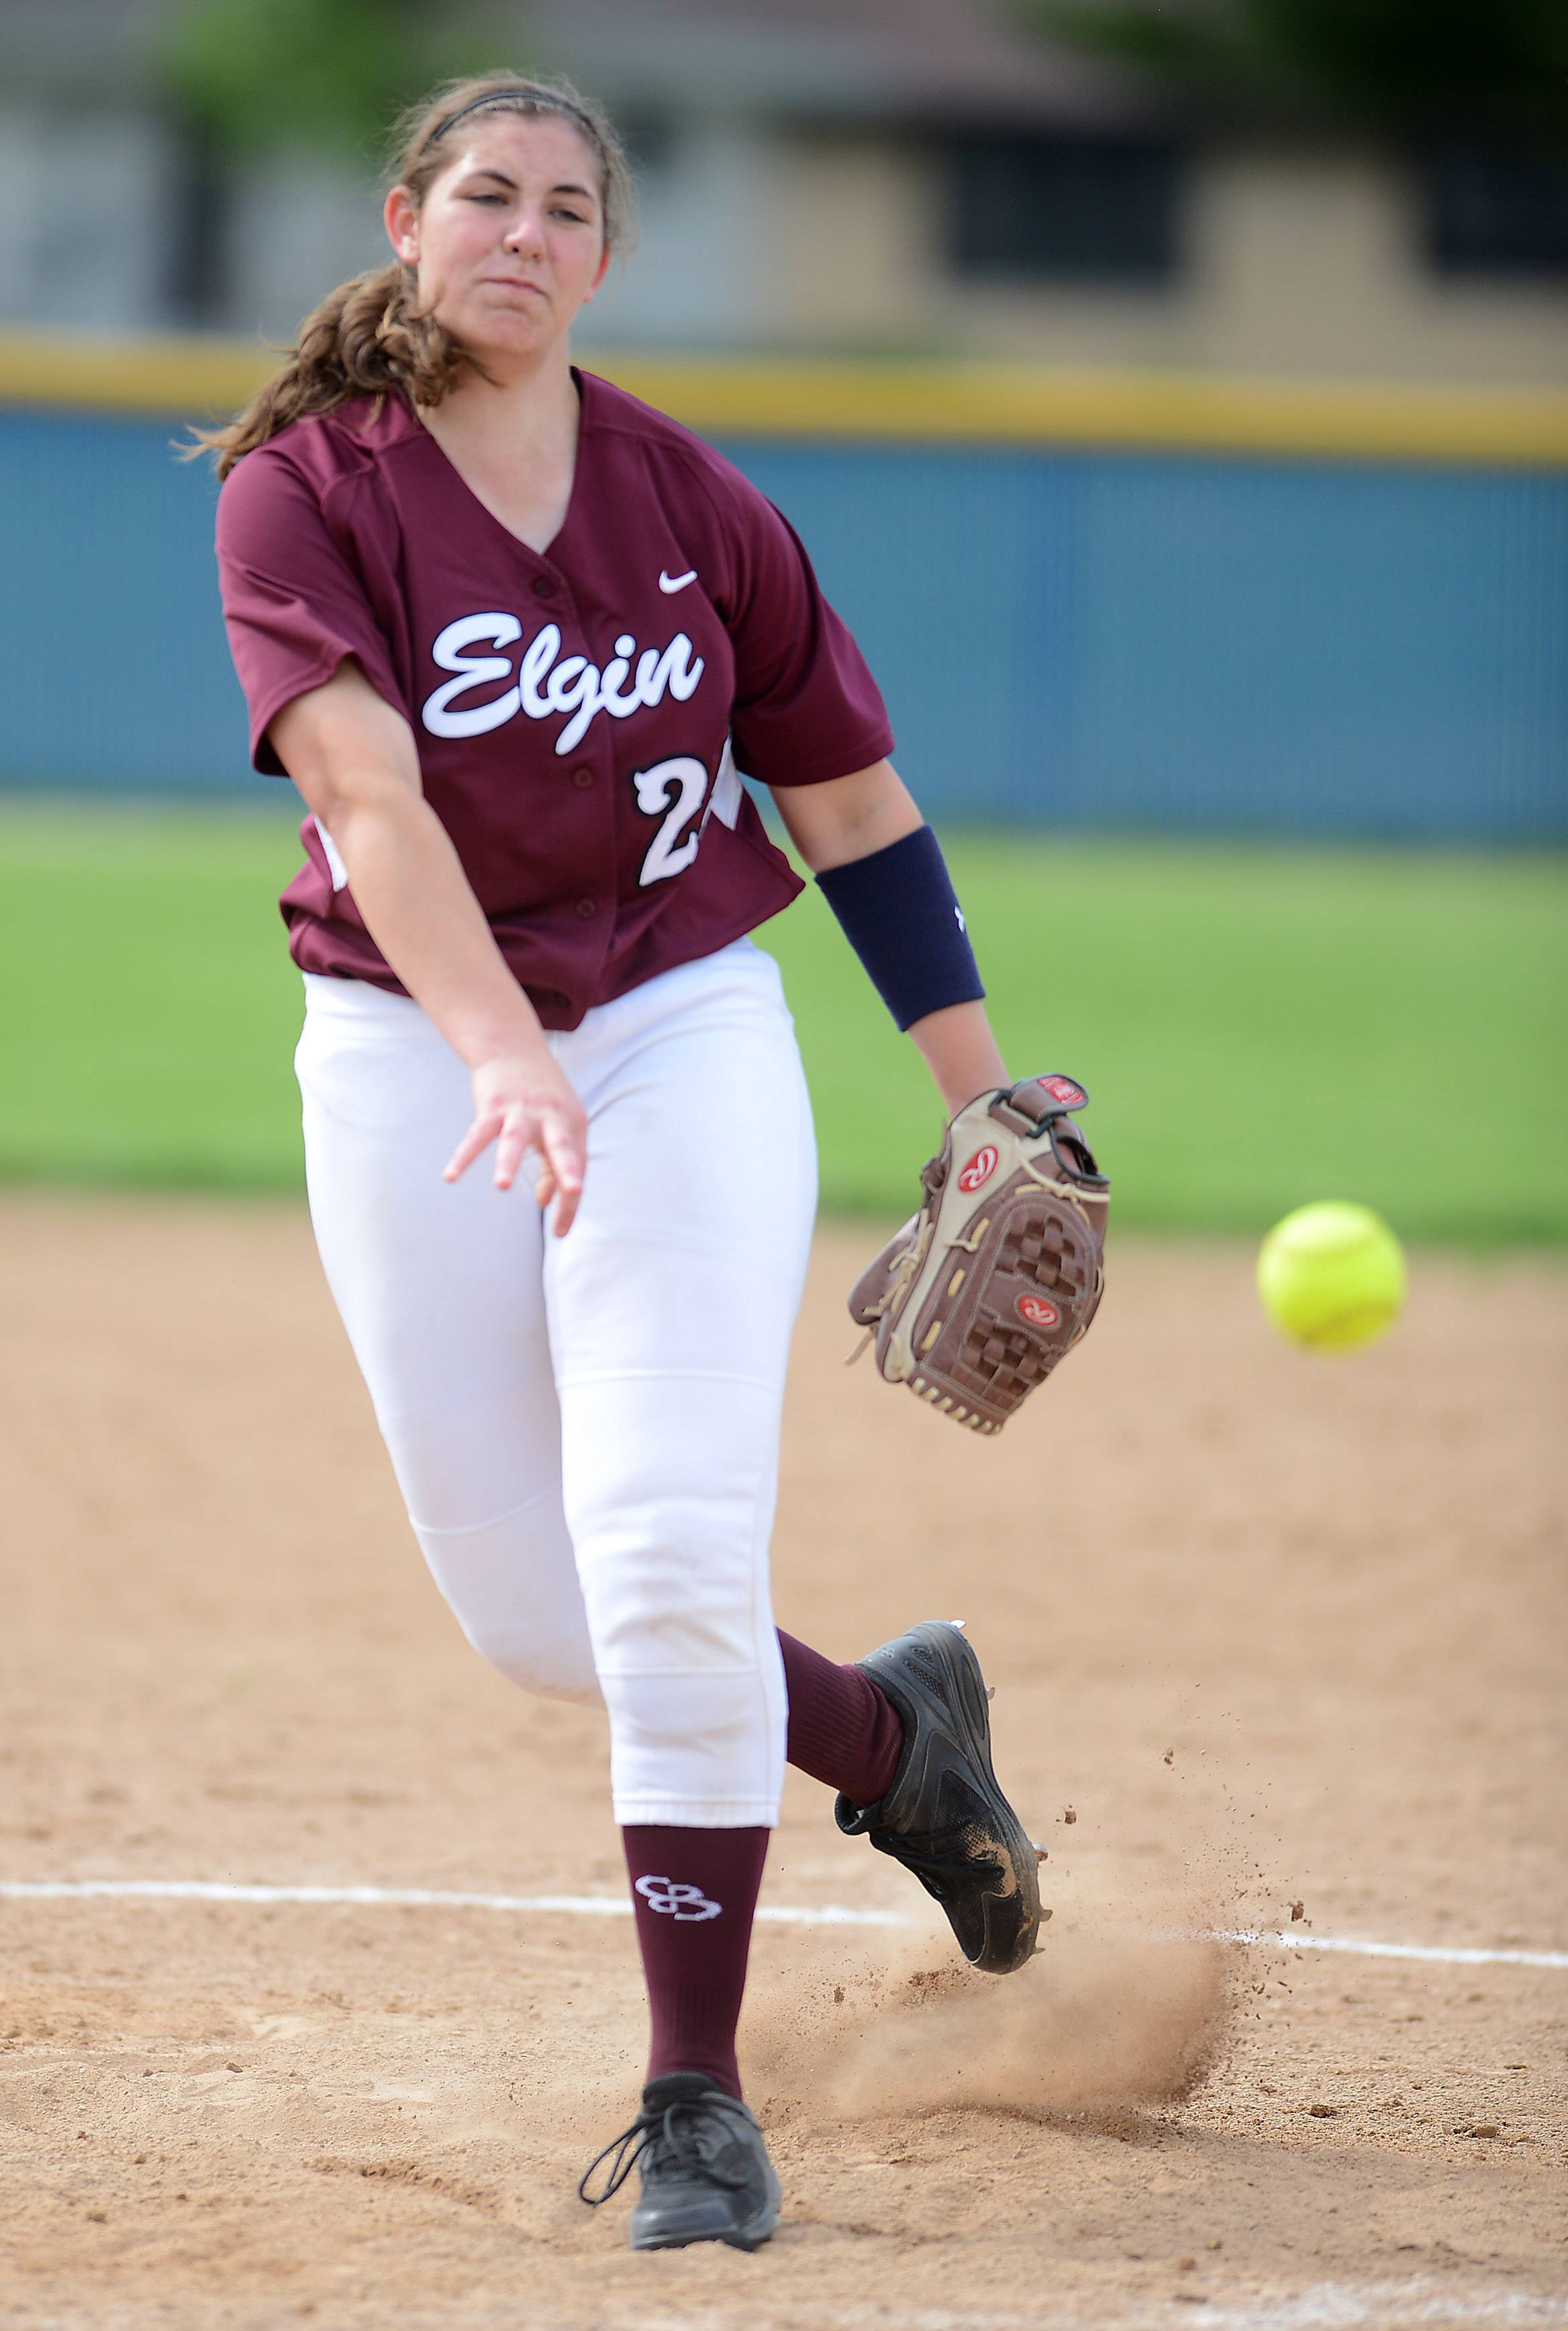 Elgin's Jessica Rago (25) delivers a pitch during Thursday's game at Larkin in Elgin.